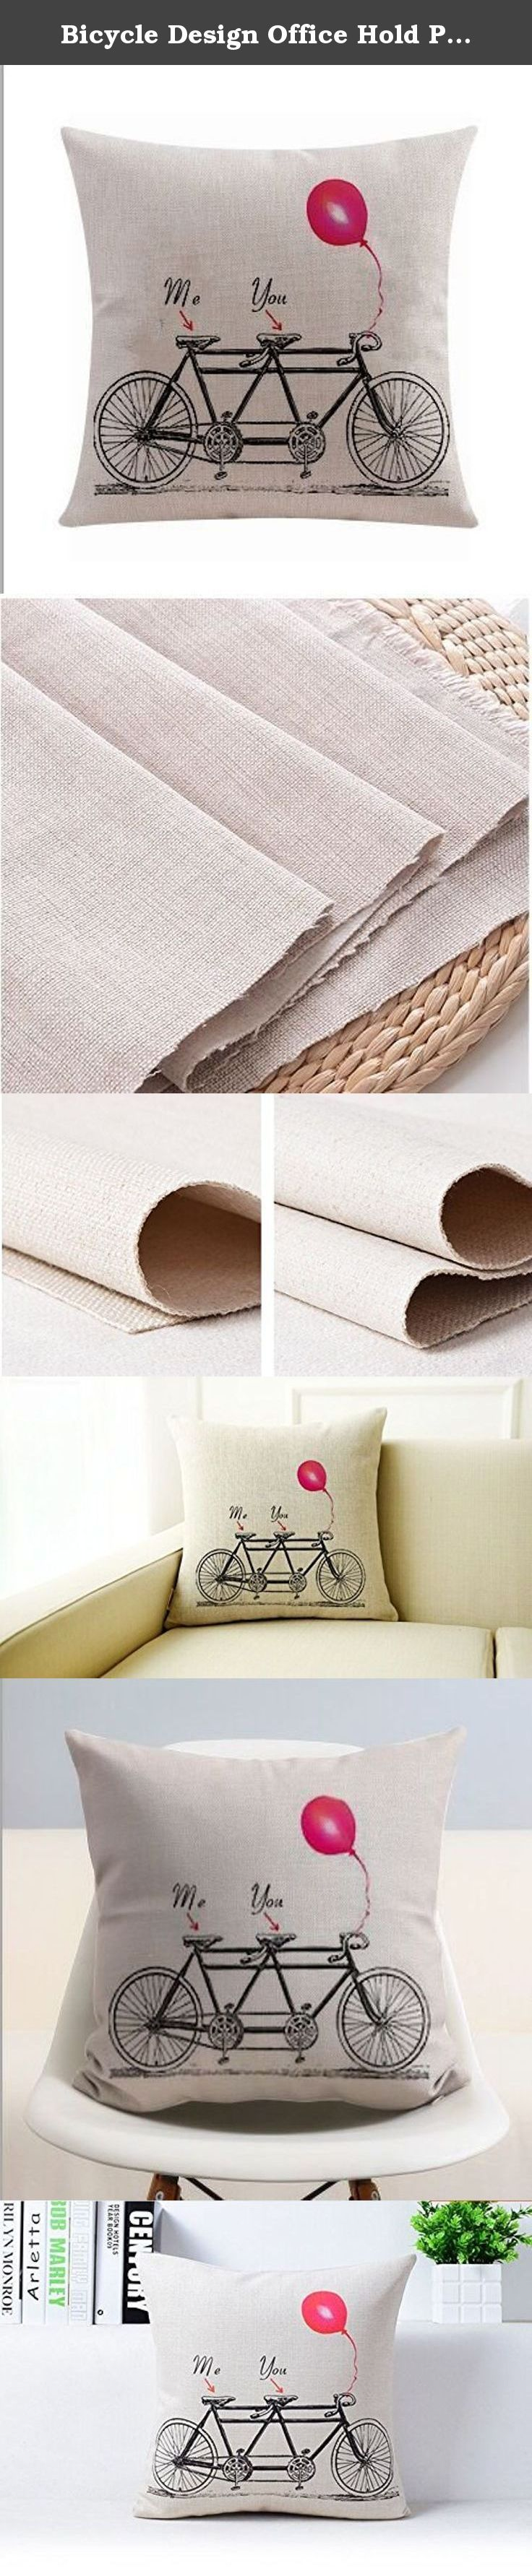 Bicycle Design Office Hold Pillow Cases Do Not Contain Core Set of Cushion for Leaning on Home Textile Products (B). Product does not contain Pillow. Cleaning can be removed. Comfortable cotton fabrics. Application: seats, bedding, pillow cushion. Large quantities of orders, custom.